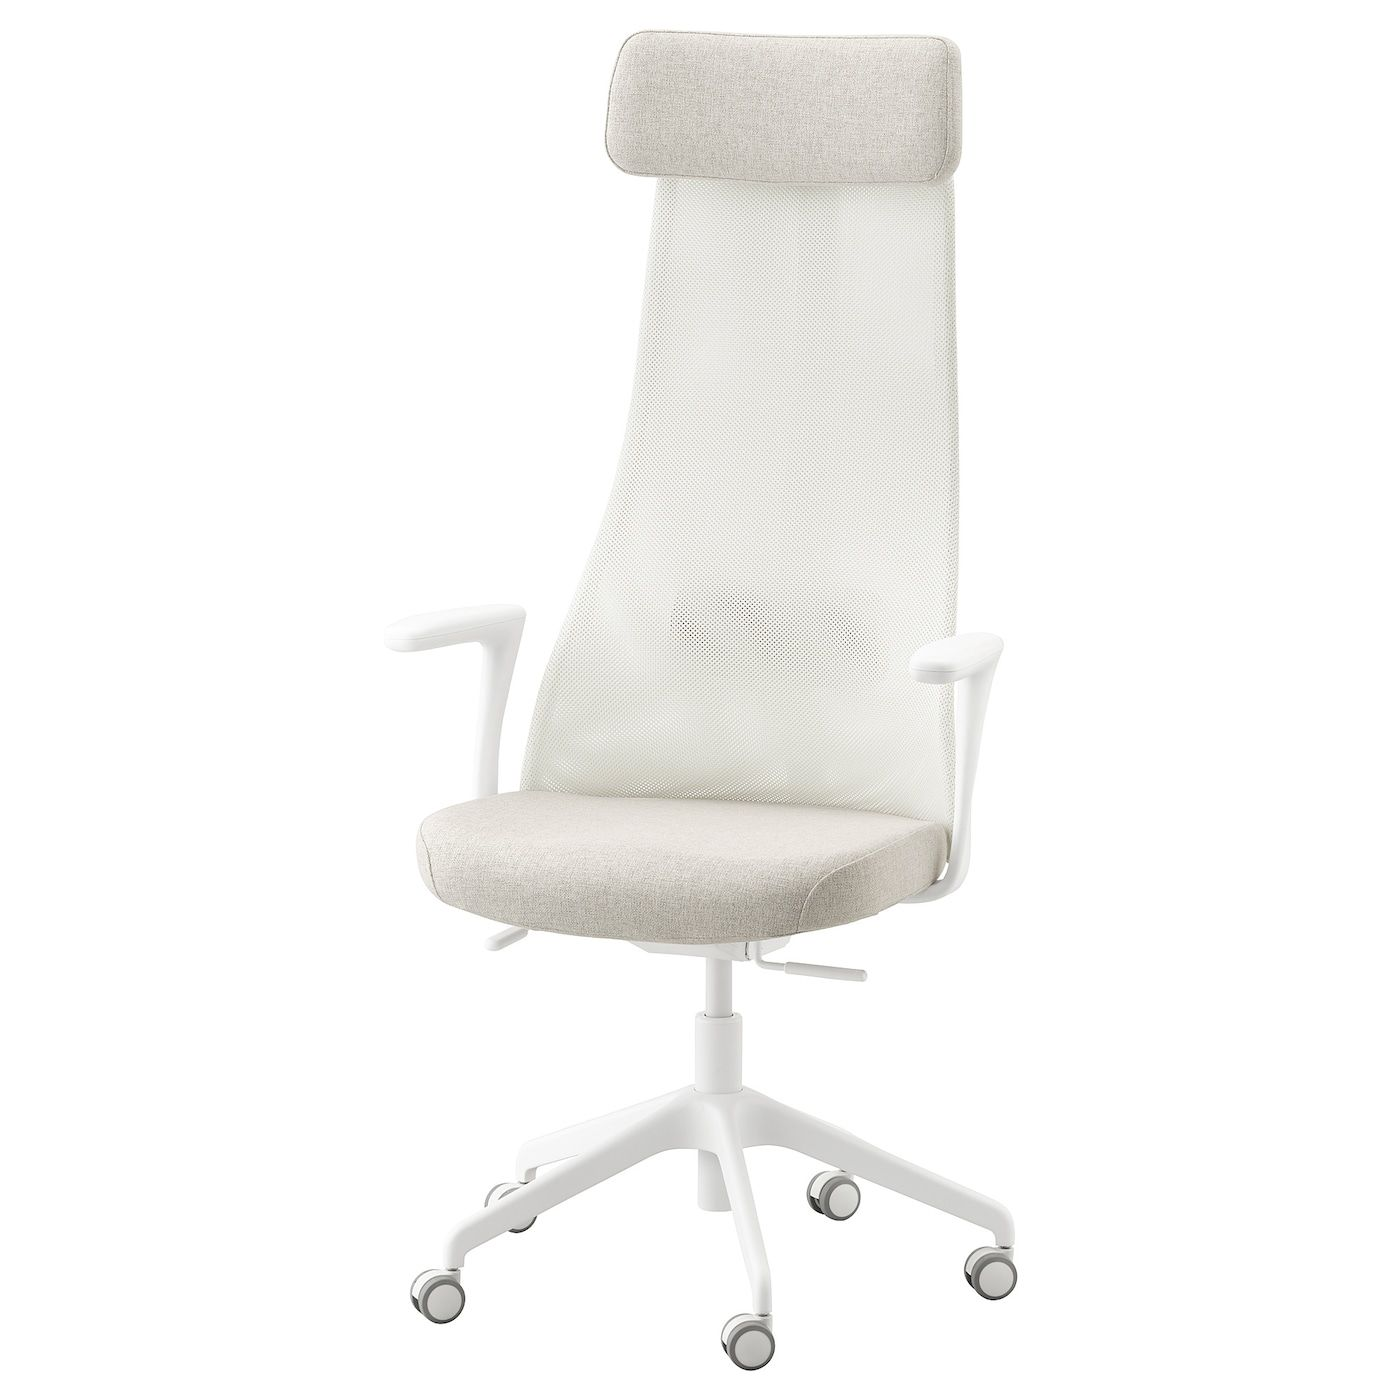 Jarvfjallet Gunnared Beige White Office Chair With Armrests Ikea In 2020 Office Chair White Office Chair Work Space Chair